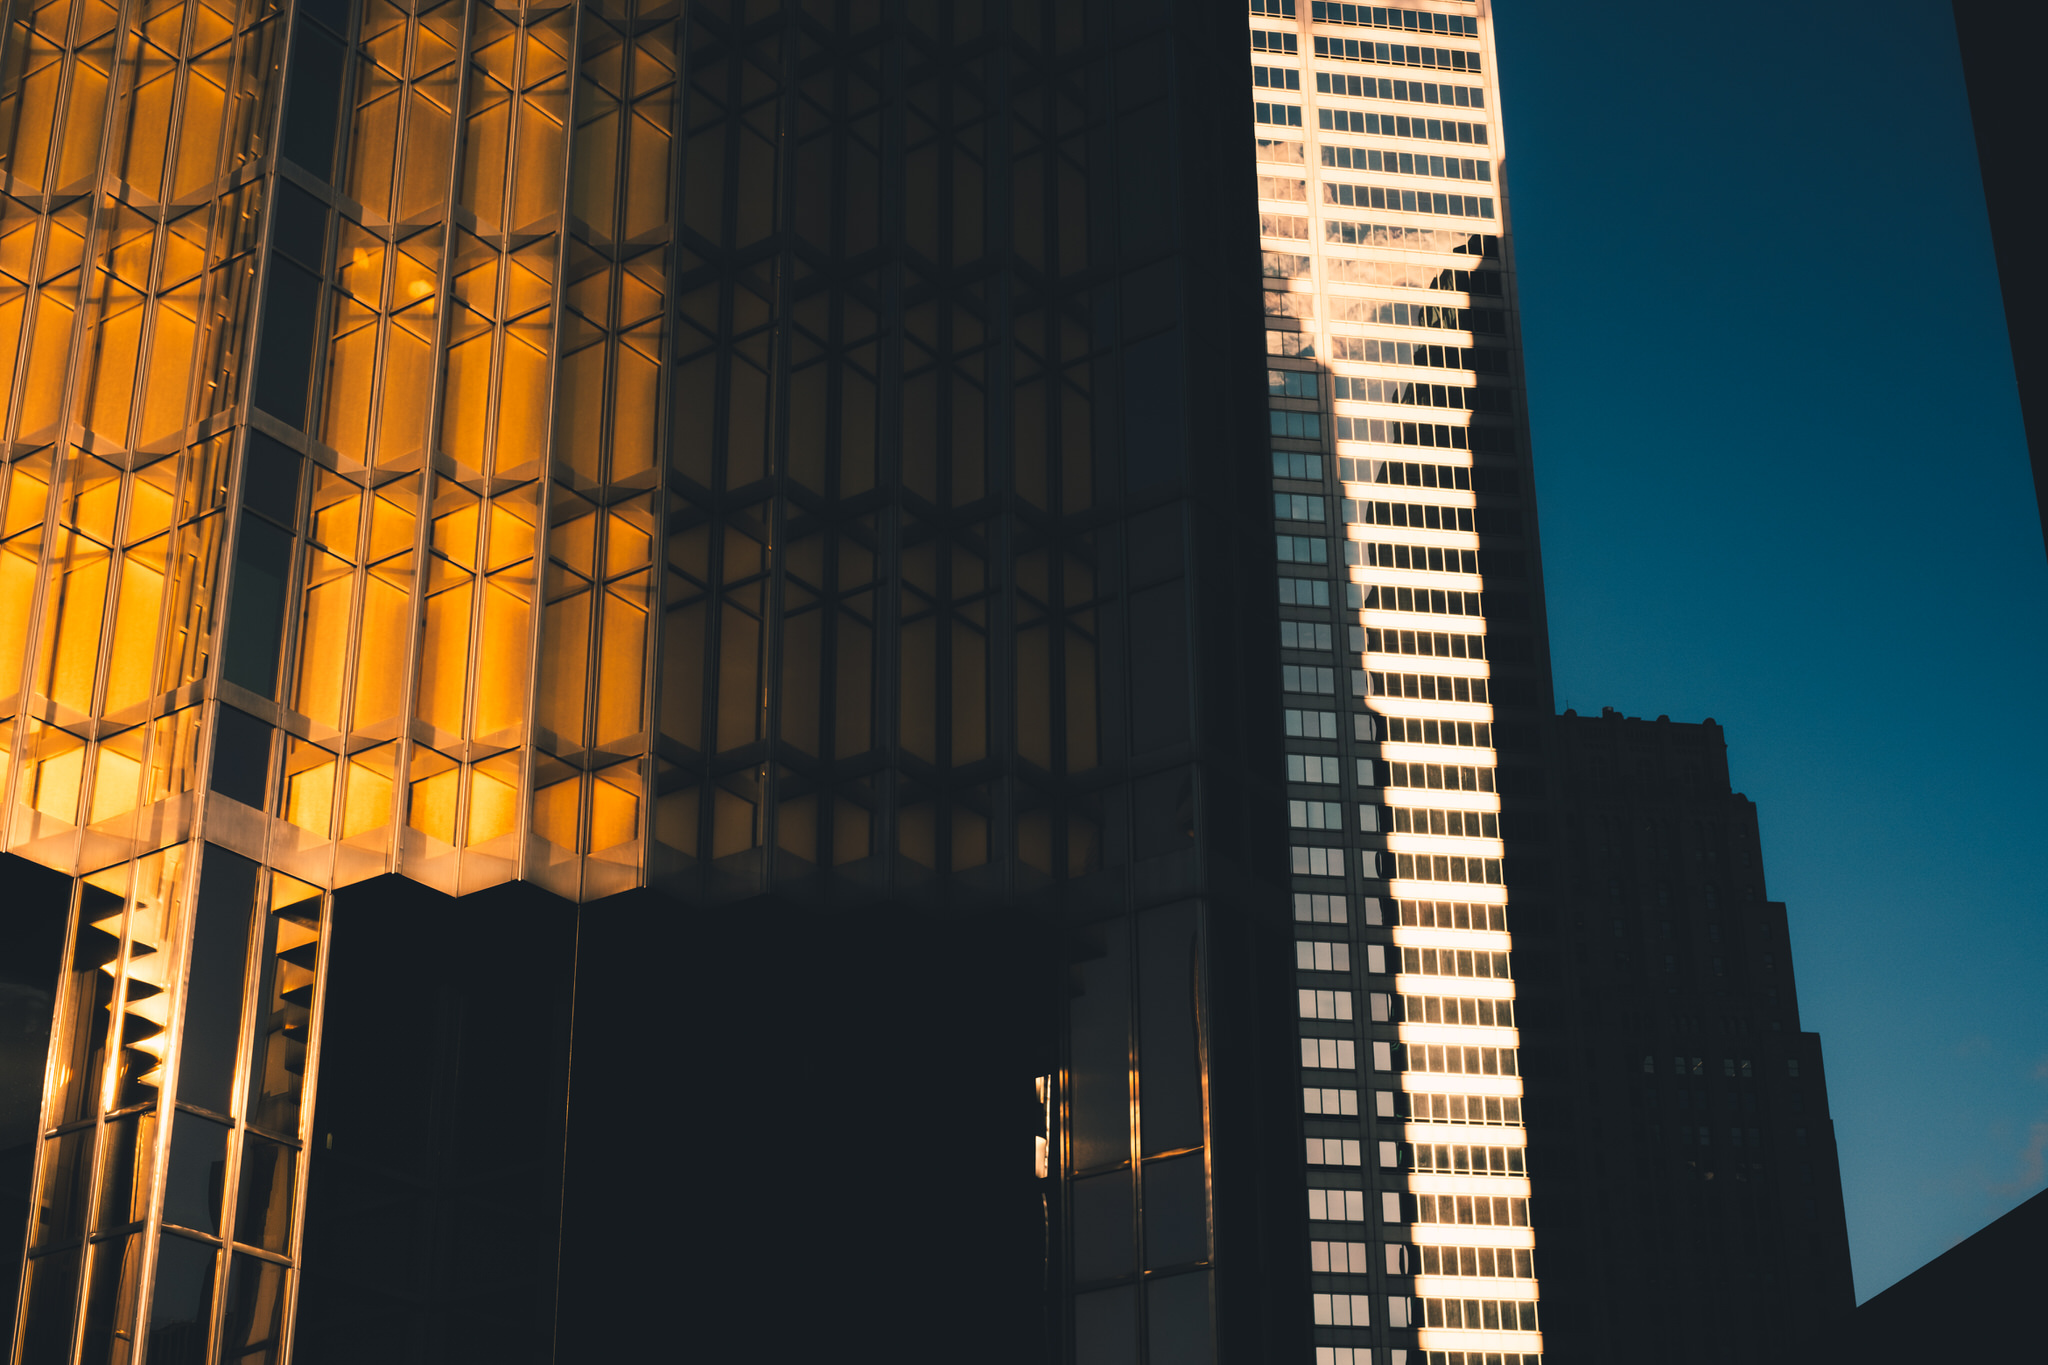 Light, Shadow, Reflection in Downtown Toronto